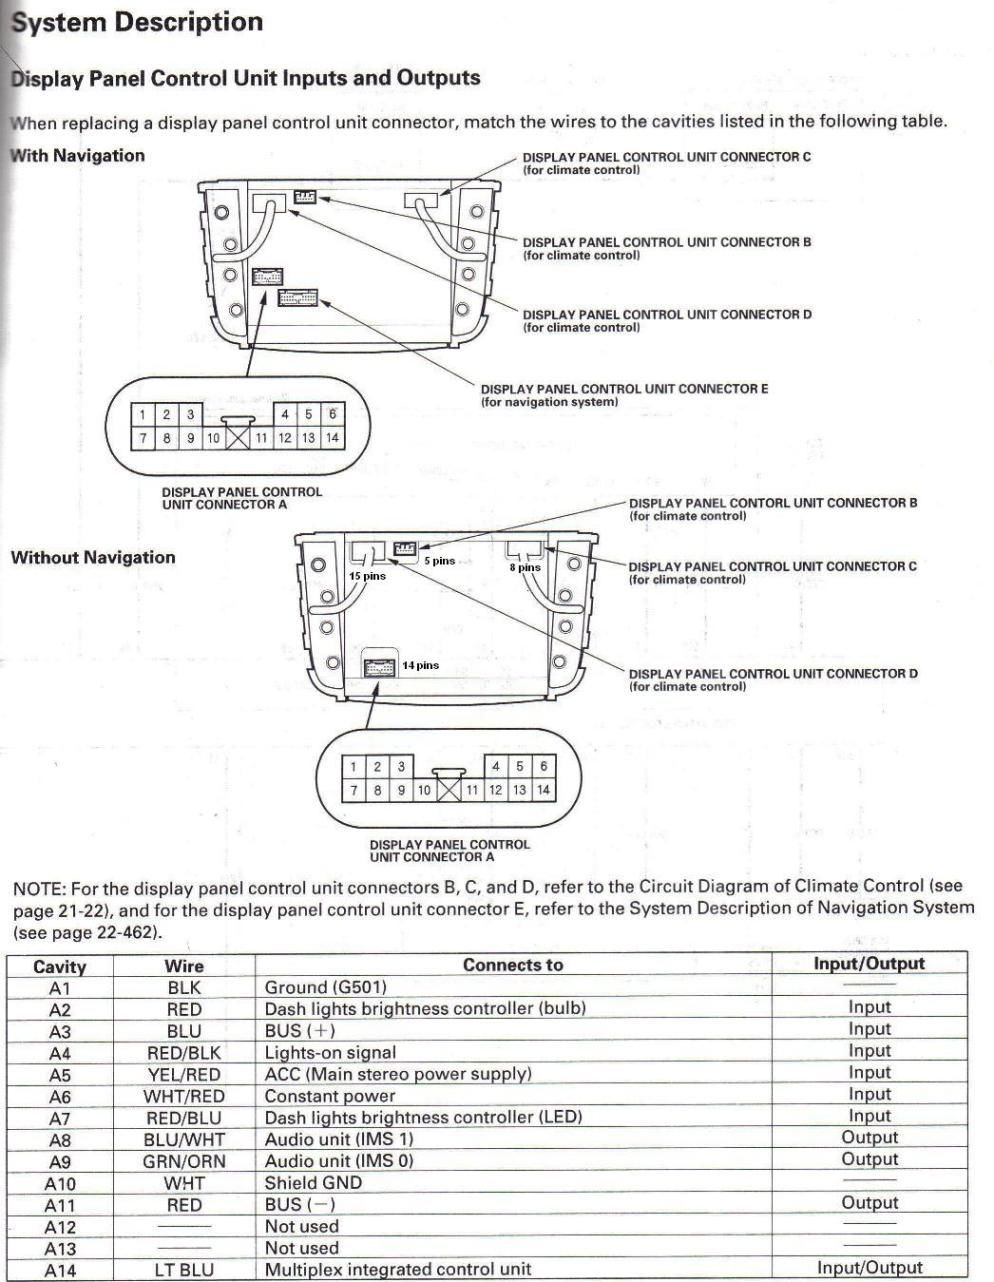 DR_7133] Acura Tl Stereo Wiring Diagram Along With 2004 Acura Tl Wiring  Diagram Wiring Diagram | Acura Tl Speaker Wiring Diagram |  | Estep Salv Mohammedshrine Librar Wiring 101